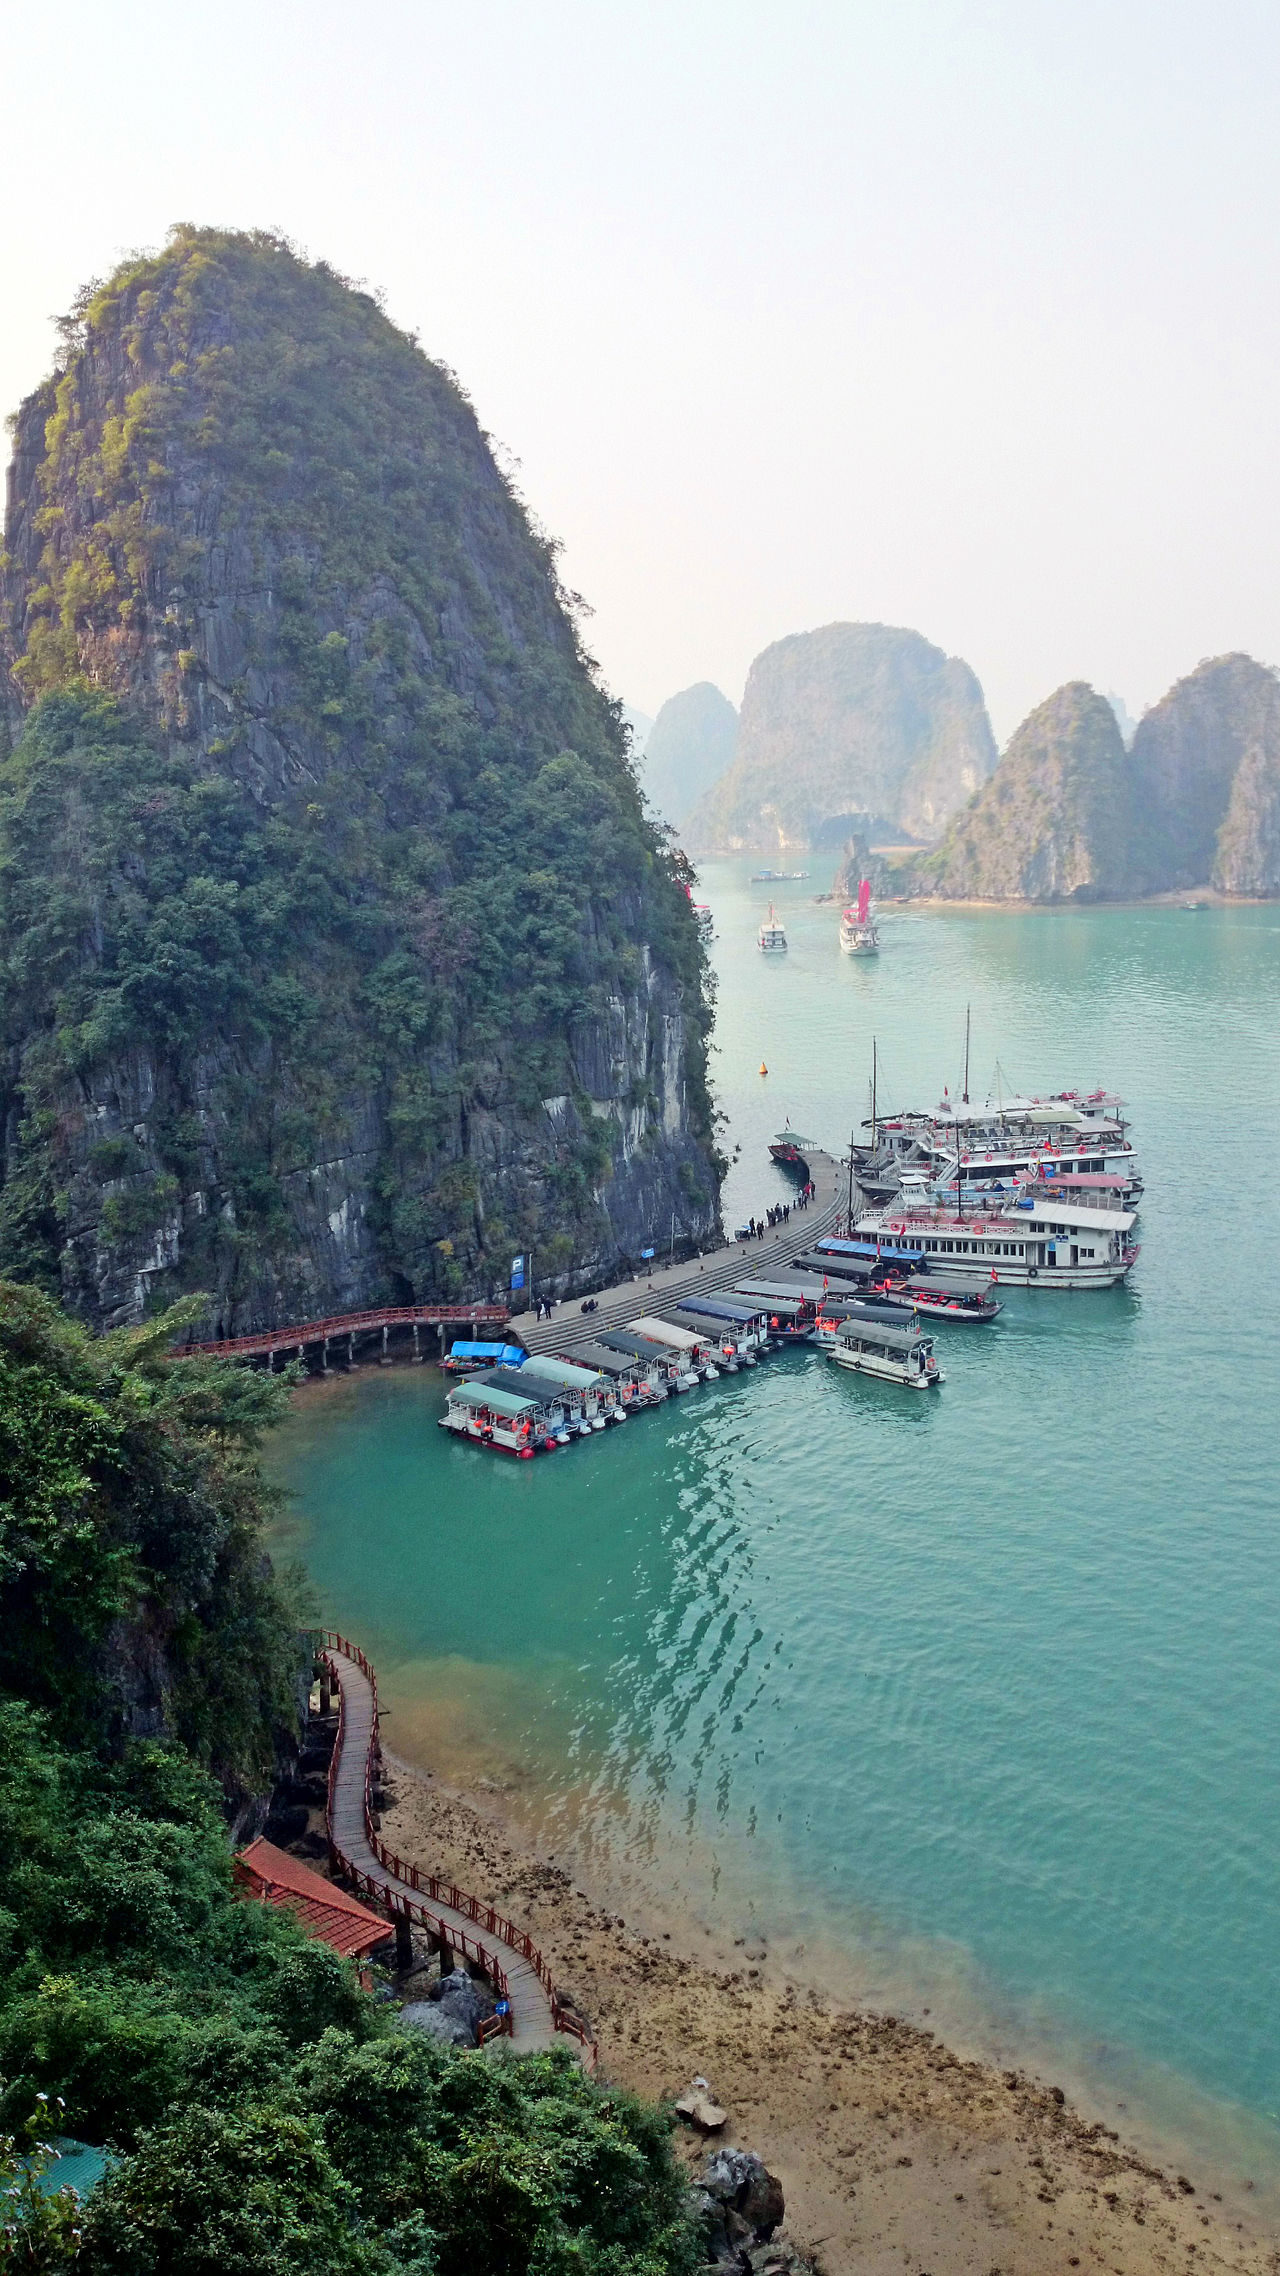 Bay Cruise Destination Halong Halong Bay Vietnam Halongbay Landscape Life Living Mountain Scenics Sea Tourist Attraction  Travel Vietnam Water